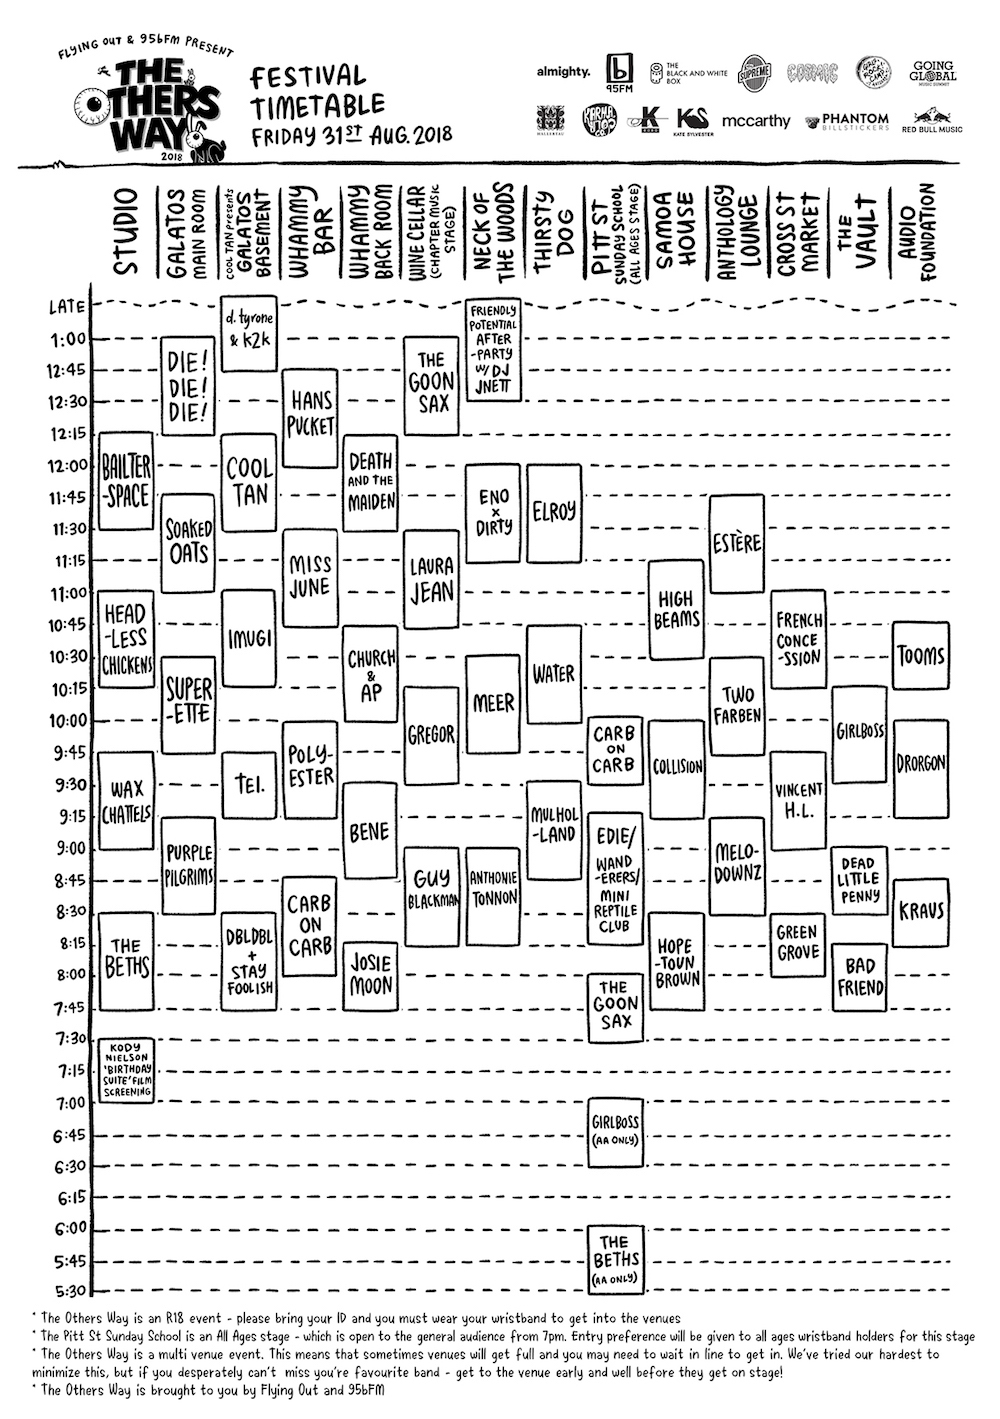 The Others Way Music Festival Timetable 2018.jpg